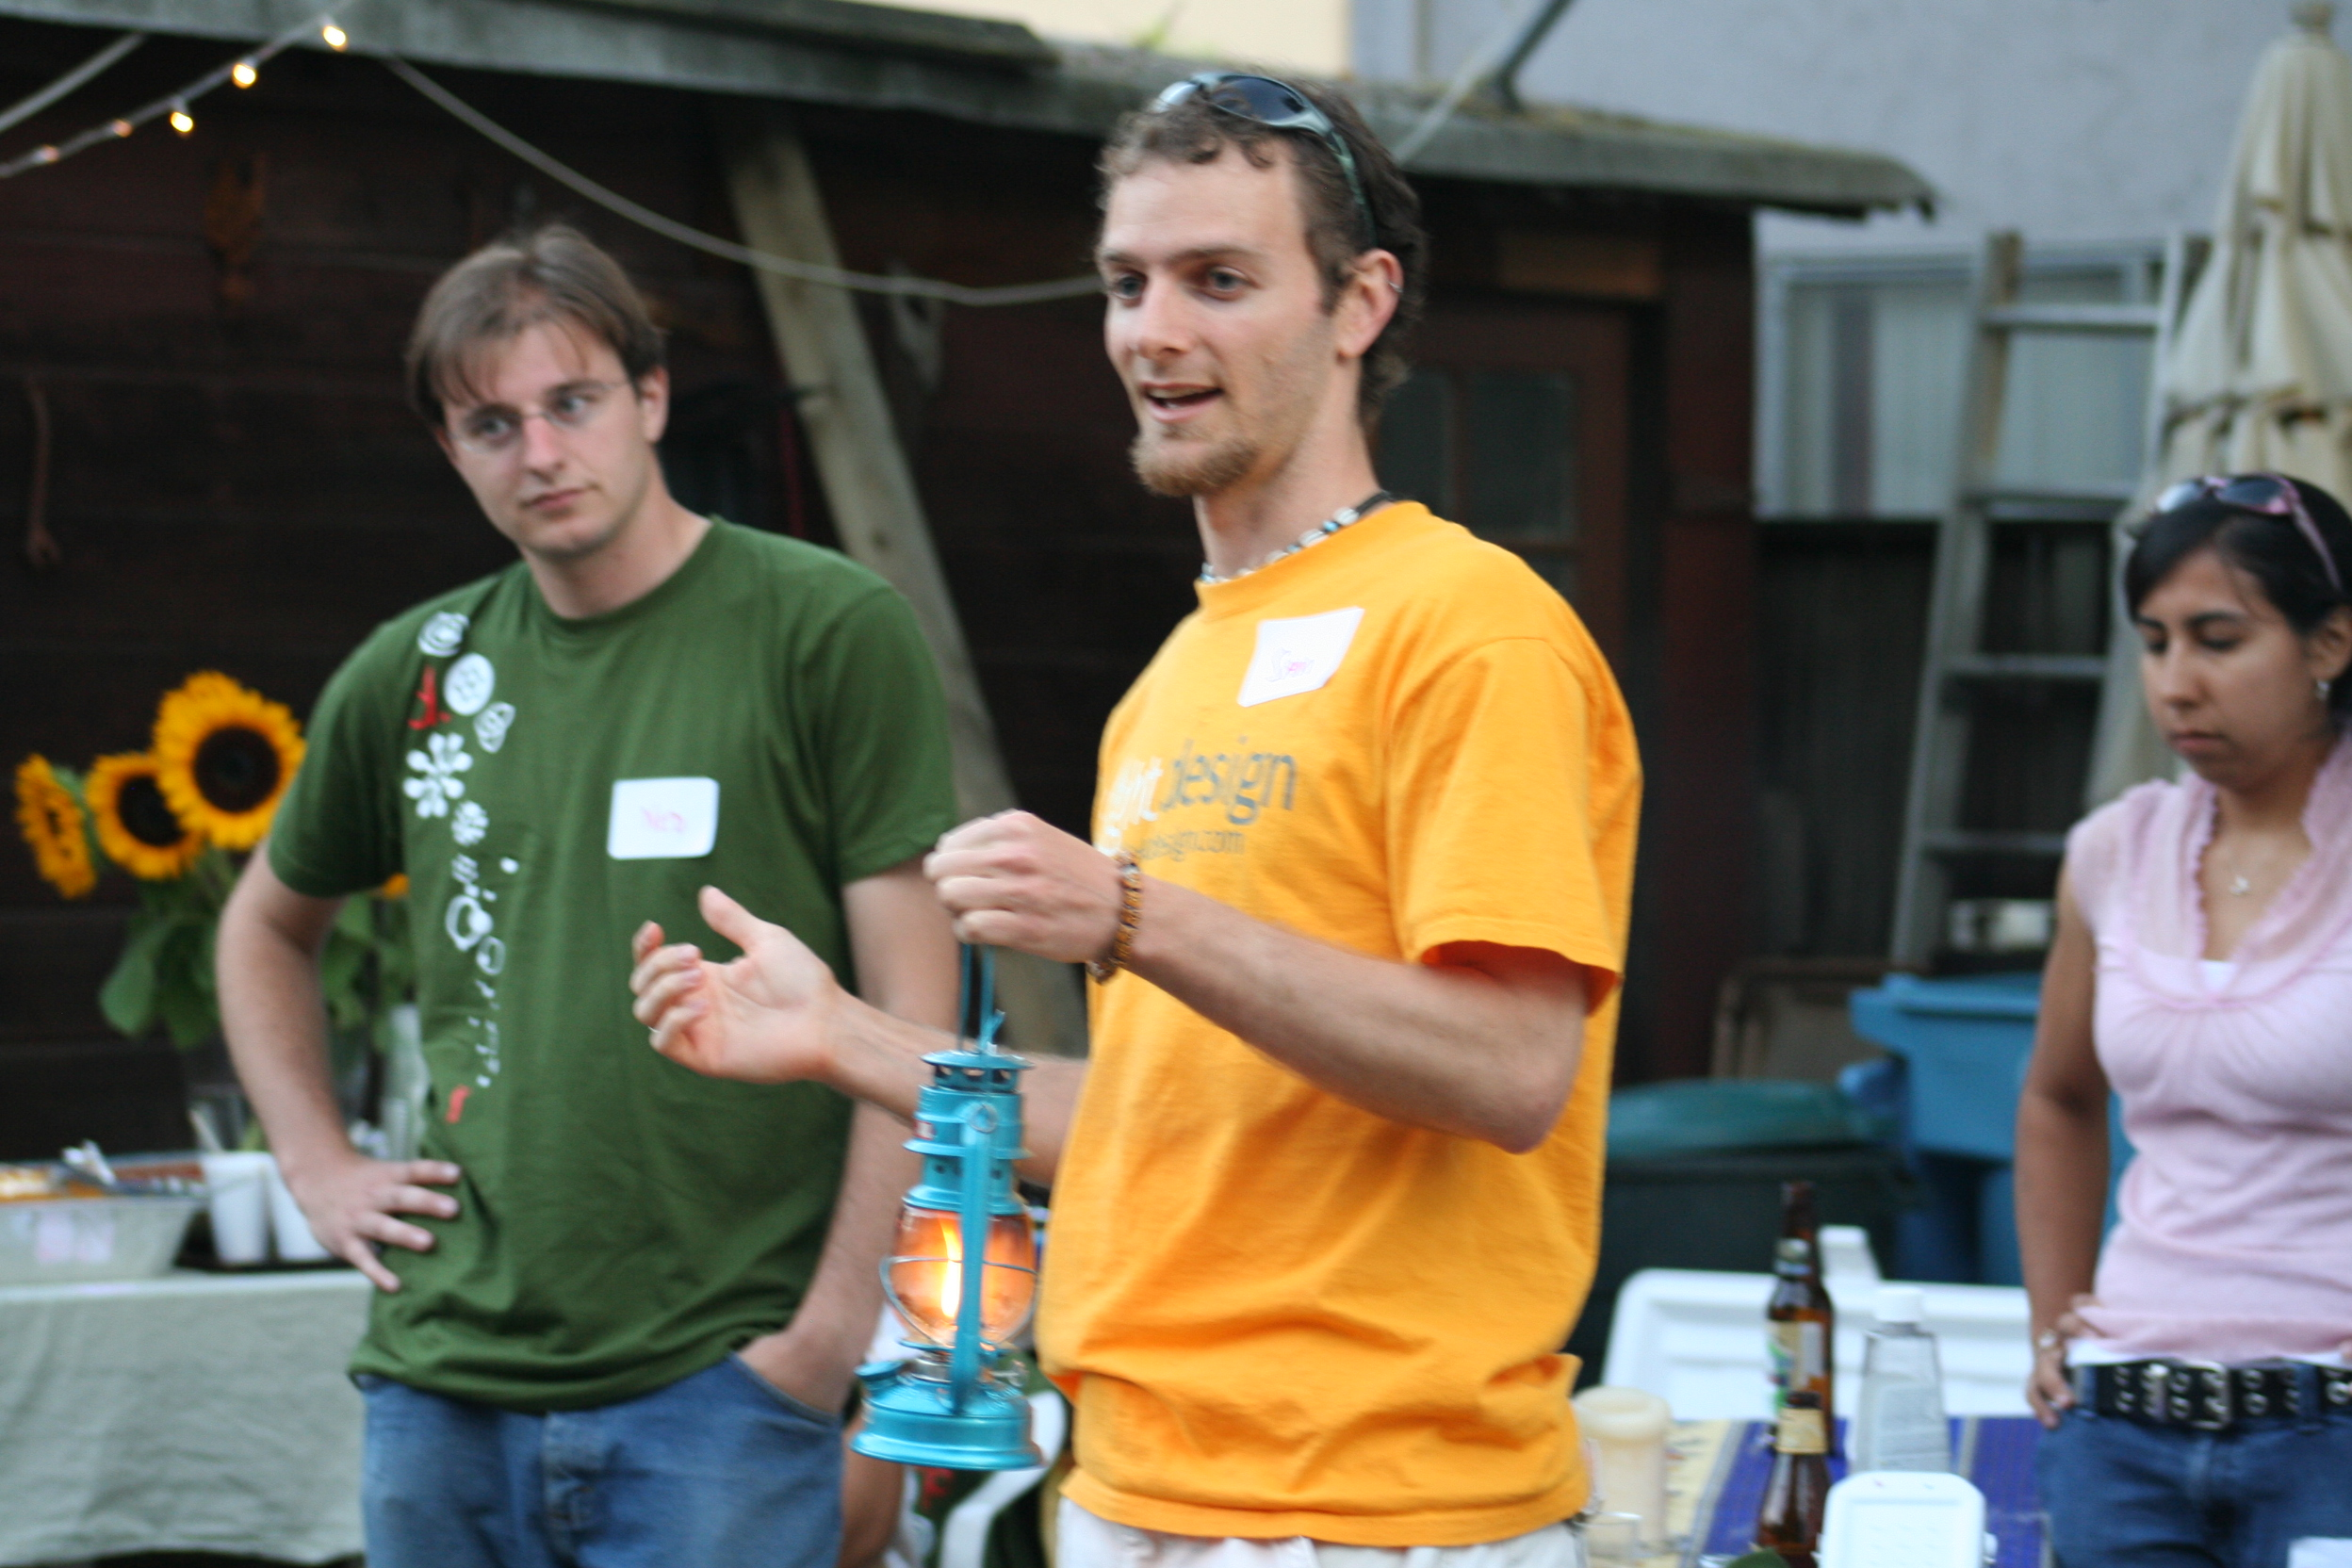 Sam and Ned presenting their prototype through story in the early days. Photo courtesy of Ned Tozun.